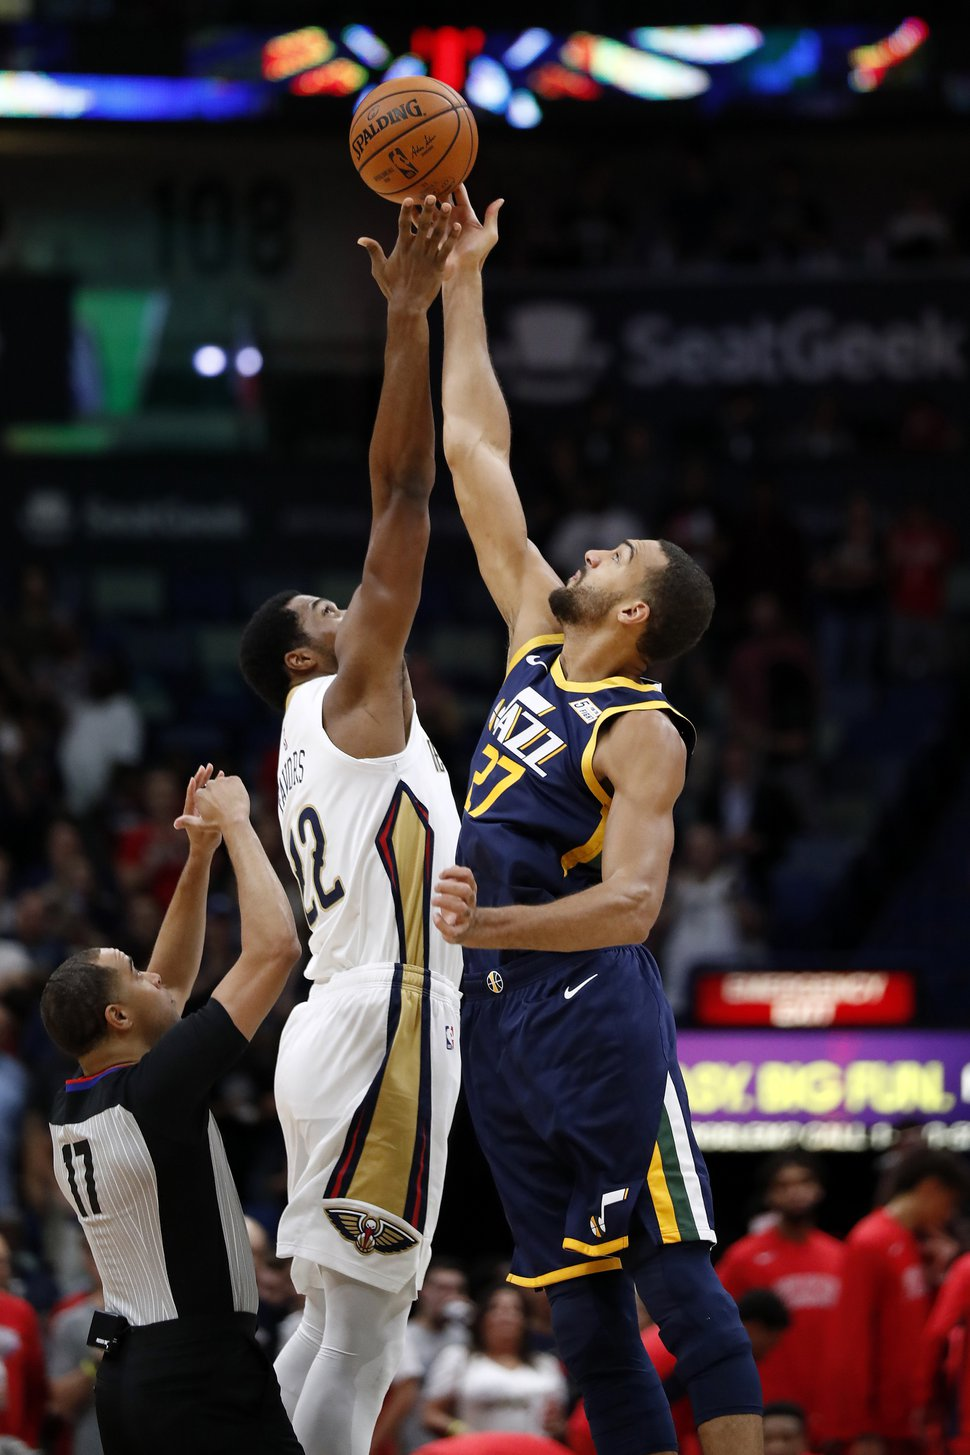 New Orleans Pelicans forward Derrick Favors (22) and Utah Jazz center Rudy Gobert (27) go up for the ball in the first half of a preseason NBA basketball game in New Orleans, Friday, Oct. 11, 2019. (AP Photo/Tyler Kaufman)